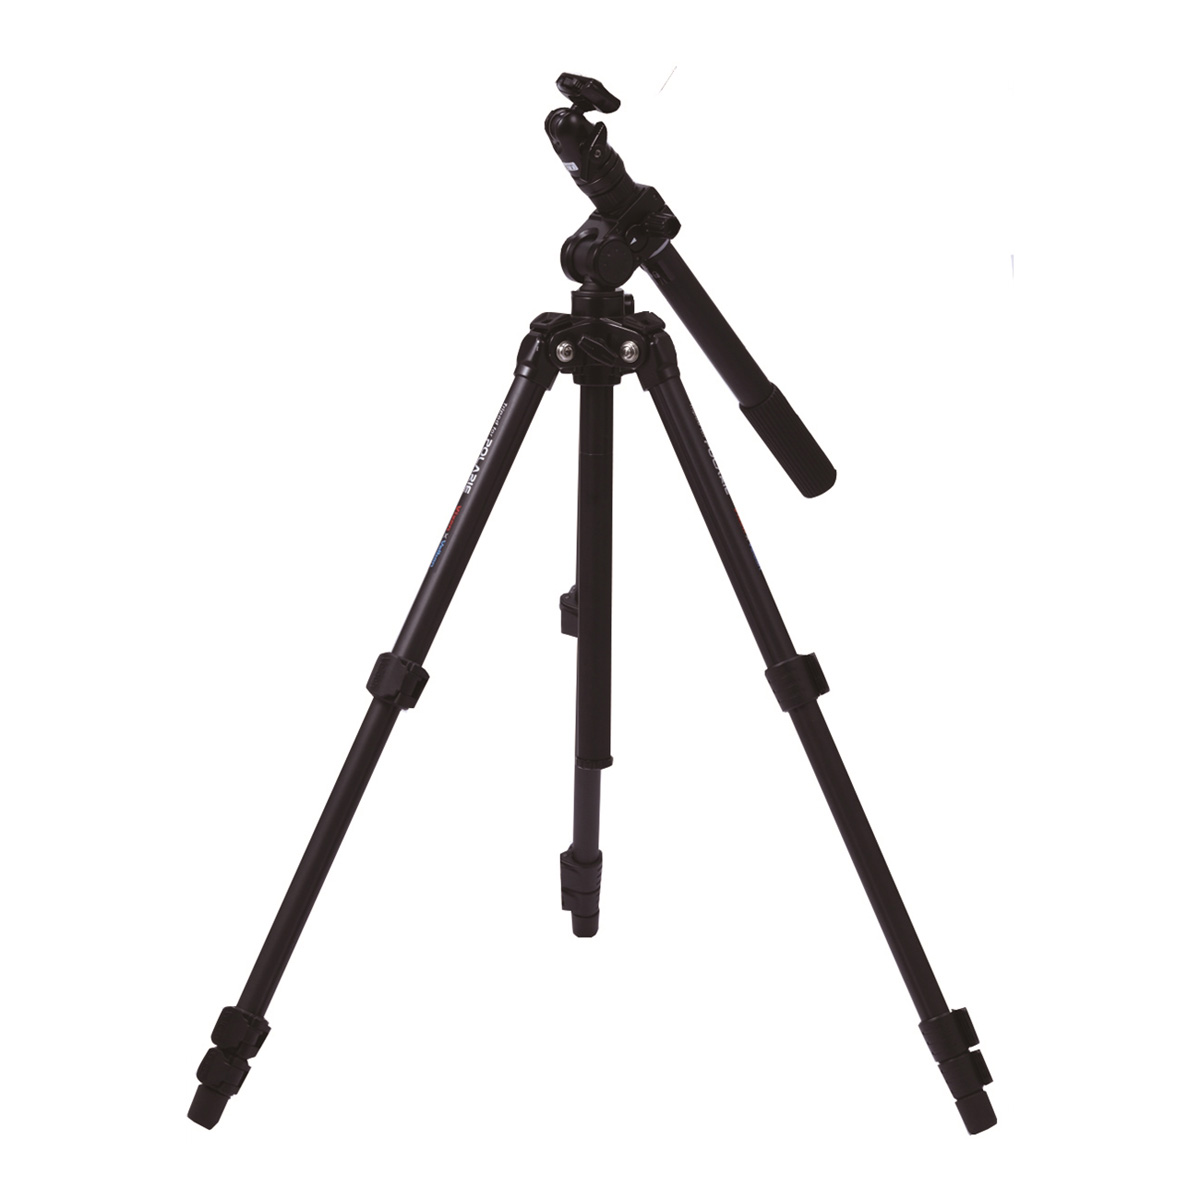 Polarie Tripod for Polarie Star Tracker